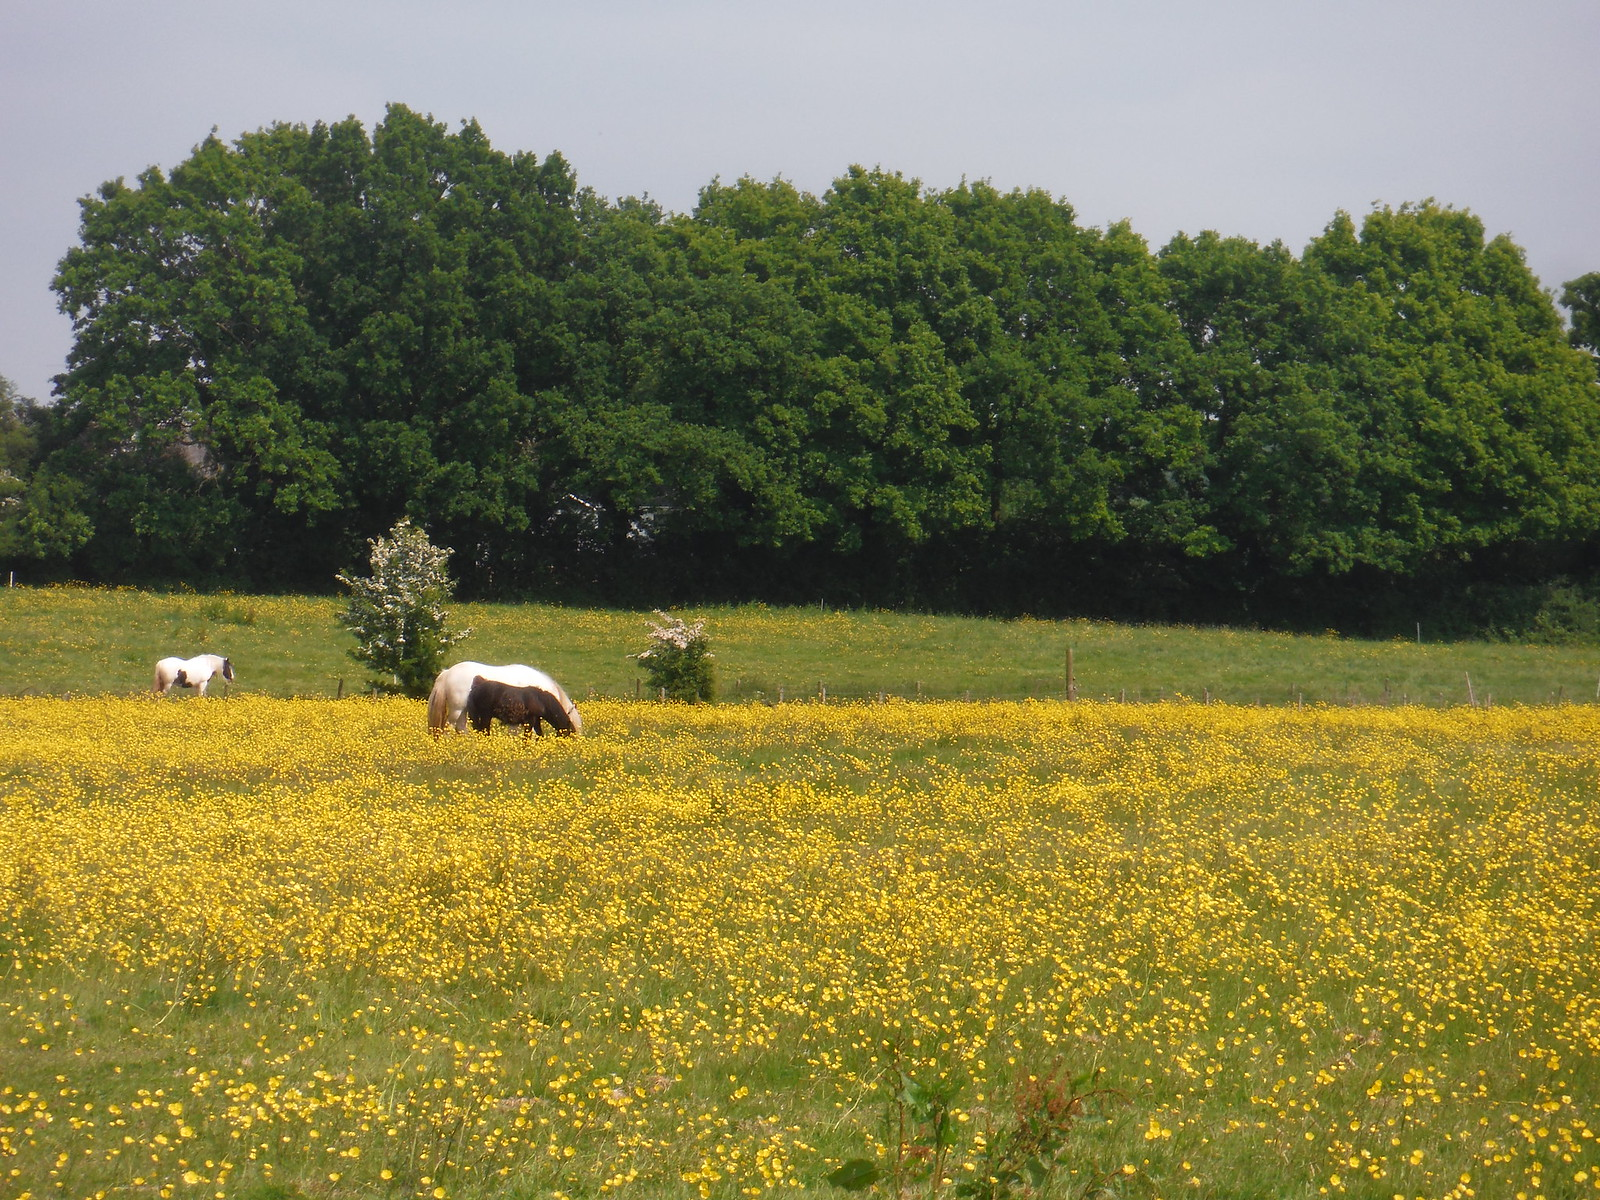 Horses in Wildflower Meadow SWC Walk 158 - Ingatestone to Battlesbridge or Wickford